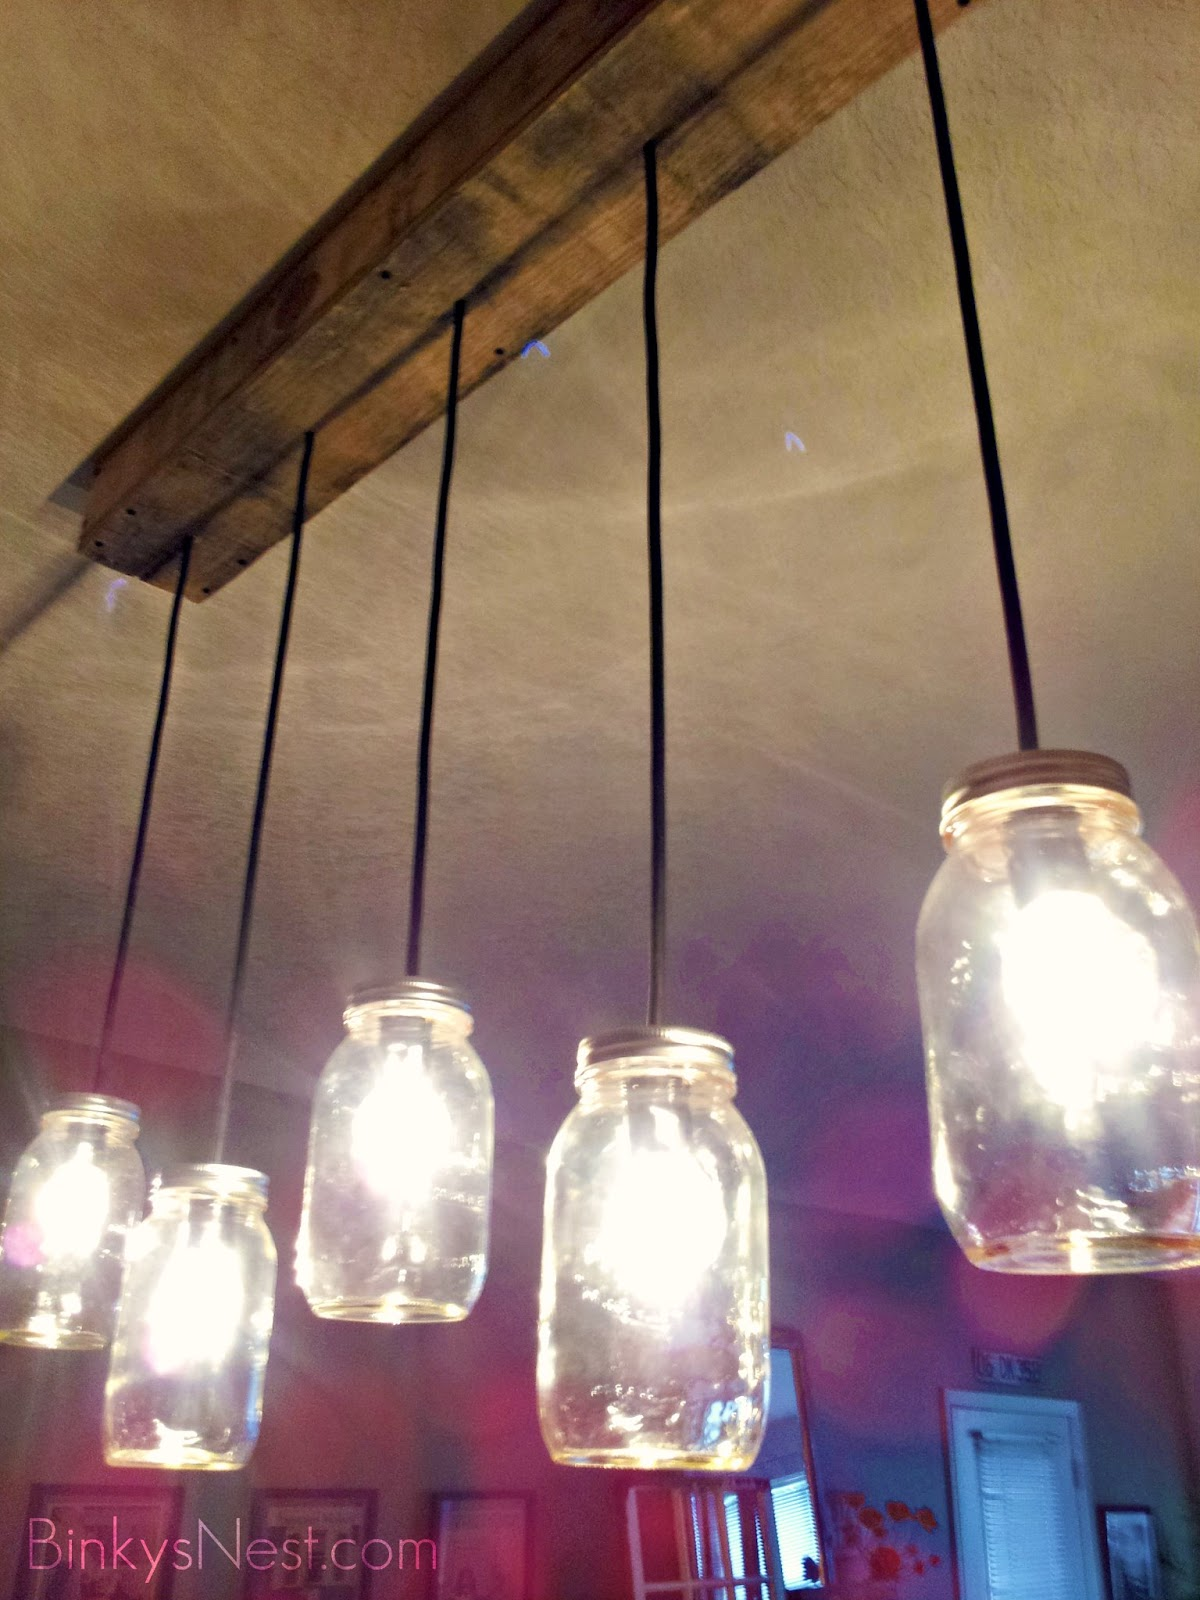 Twenty8divine mason jar rustic pallet light fixture diy mason jar rustic pallet light fixture diy on binkysnest arubaitofo Image collections